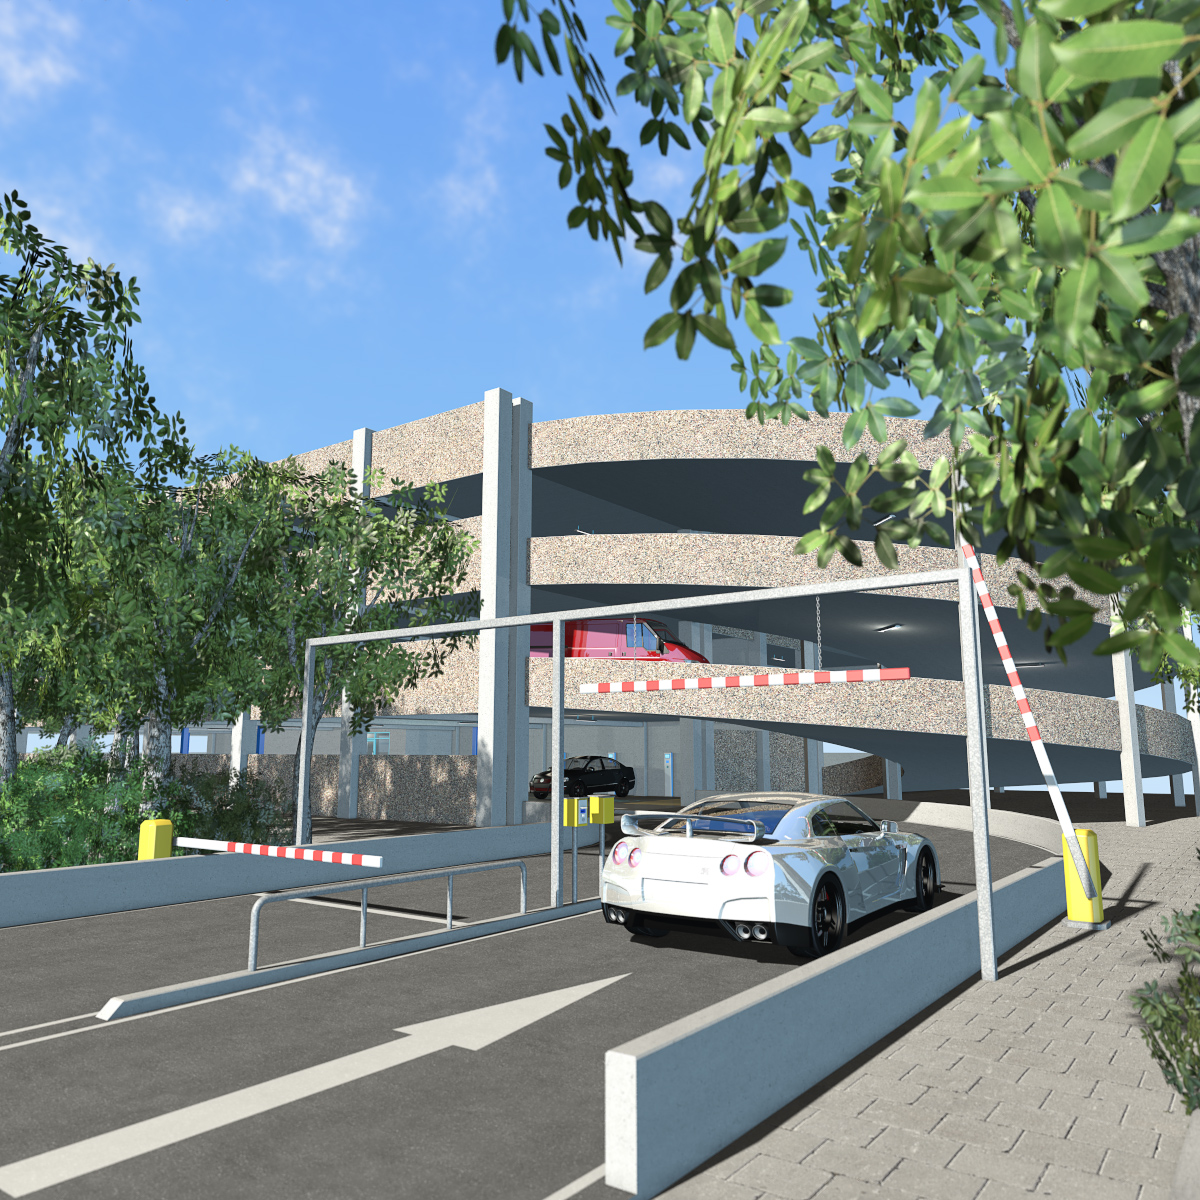 Multi-storey car park - Extended License by 2nd_World